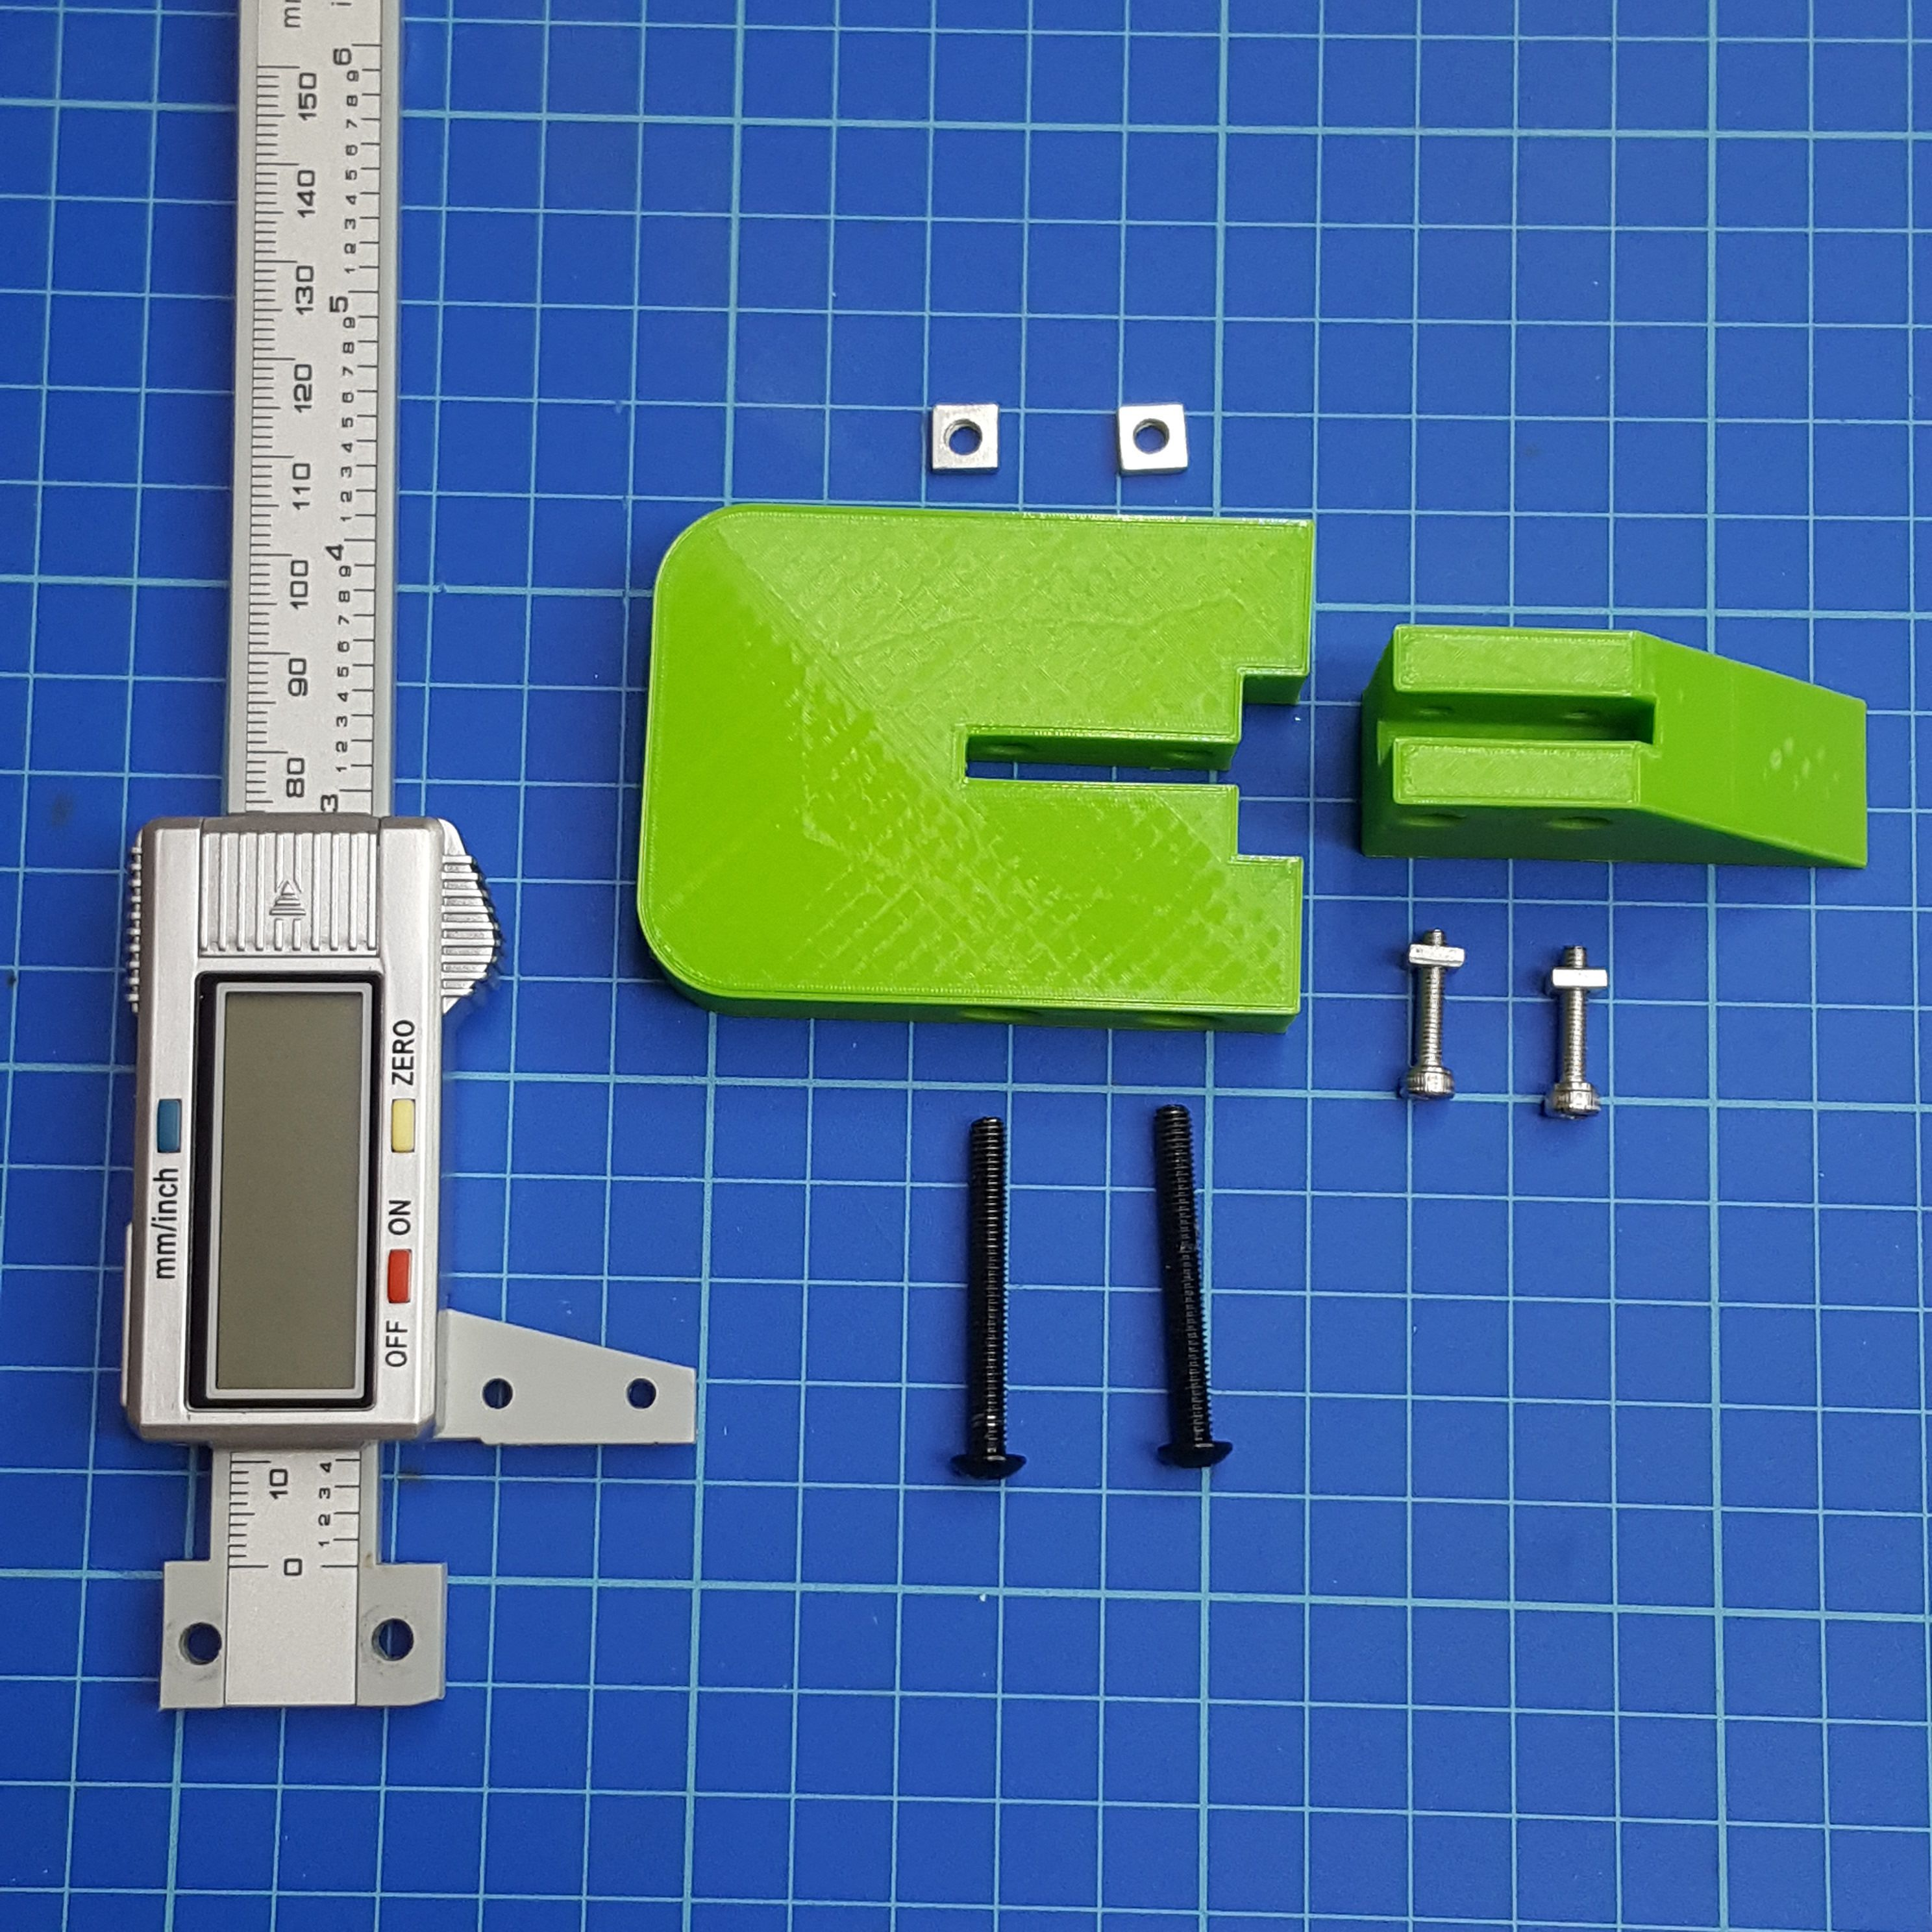 20201012_161707.jpg Download STL file Height Gauge with Electronic Digital Caliper • Object to 3D print, aleXall